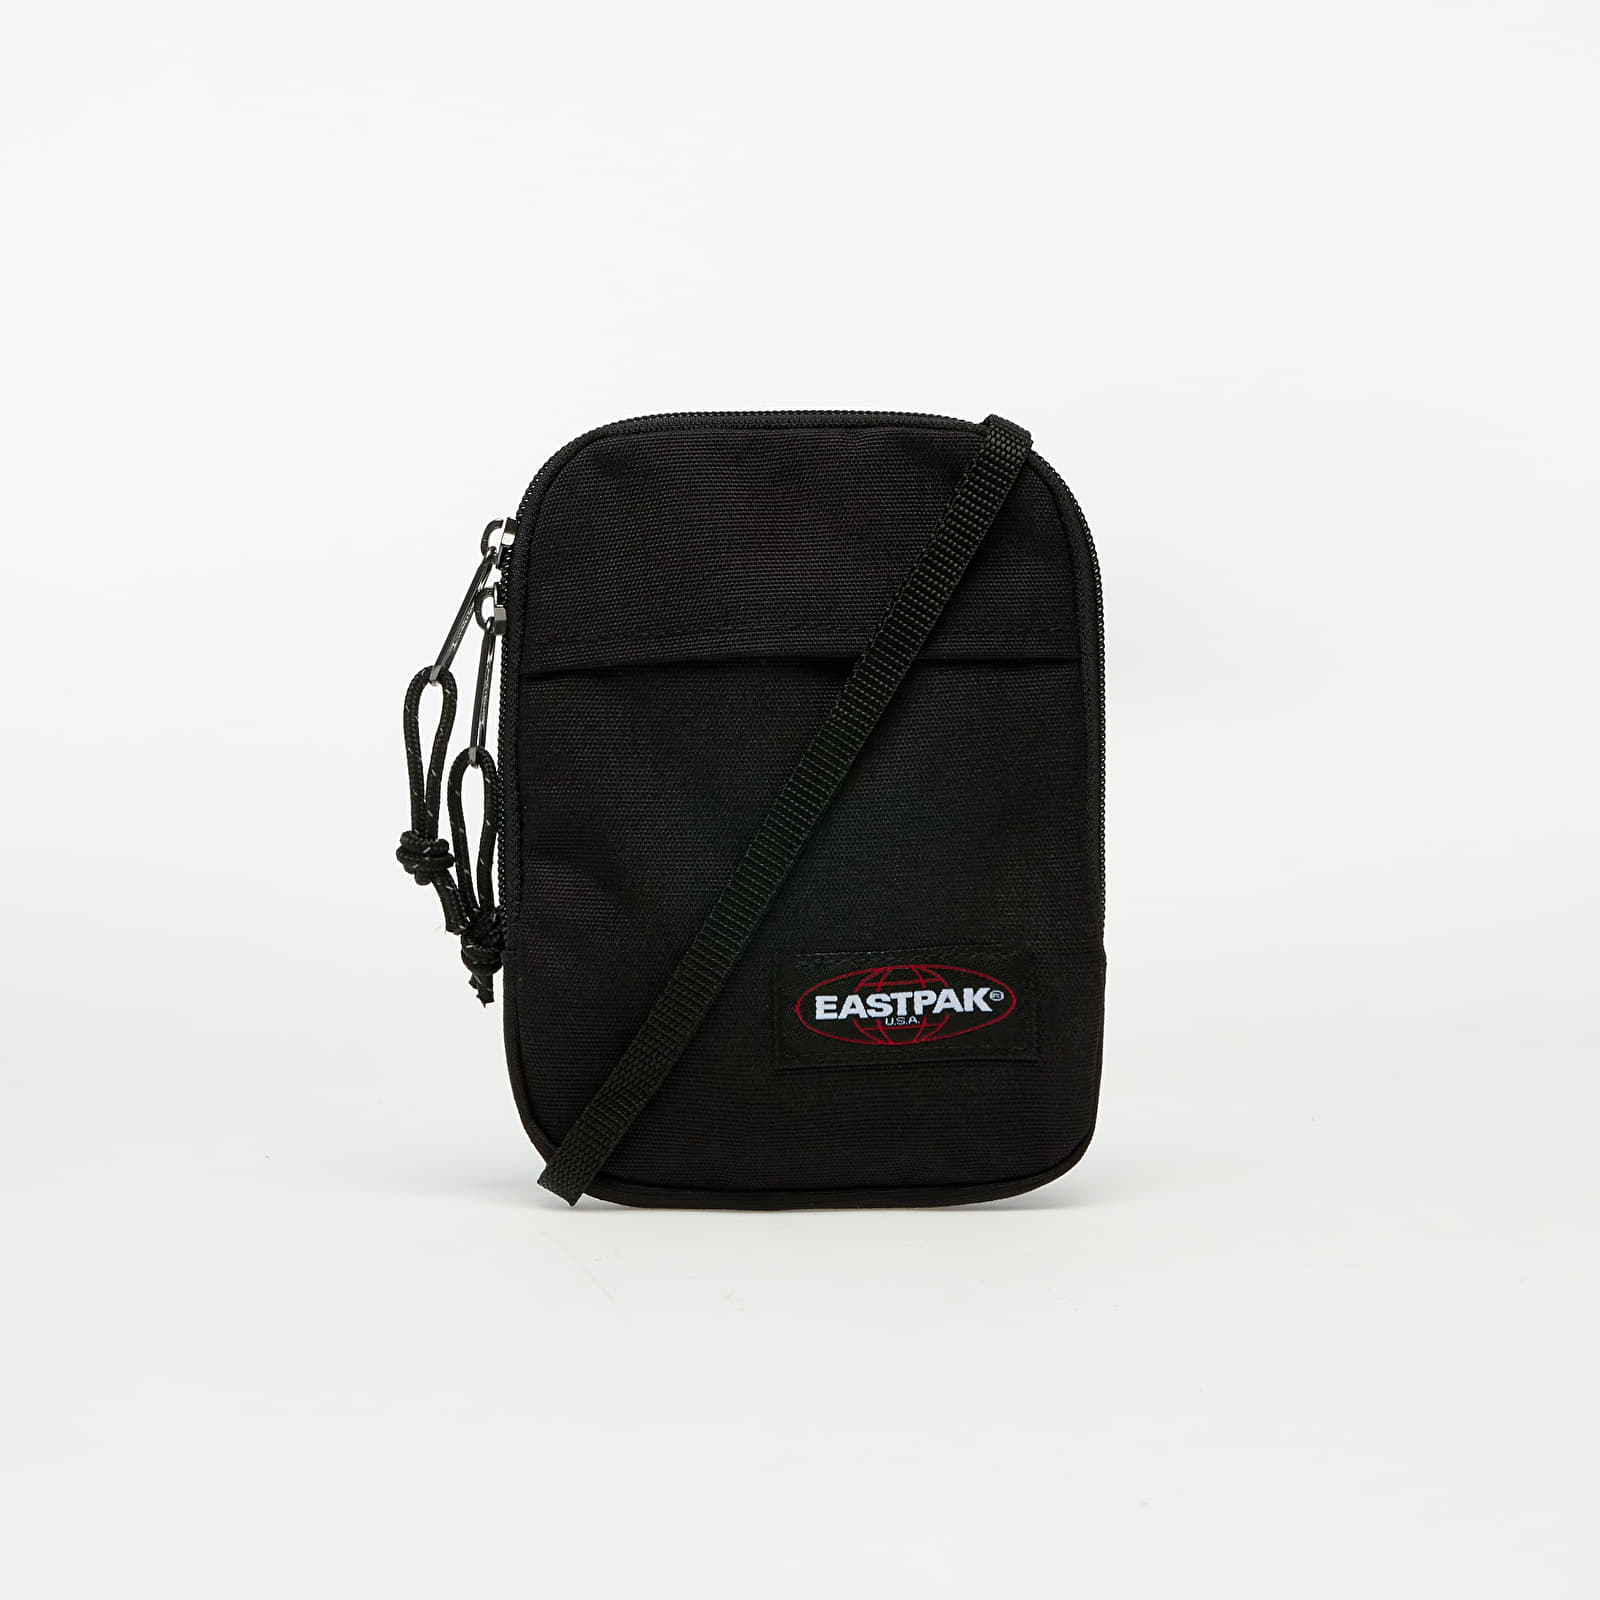 Bags Eastpak Buddy Crossbody Bag Black